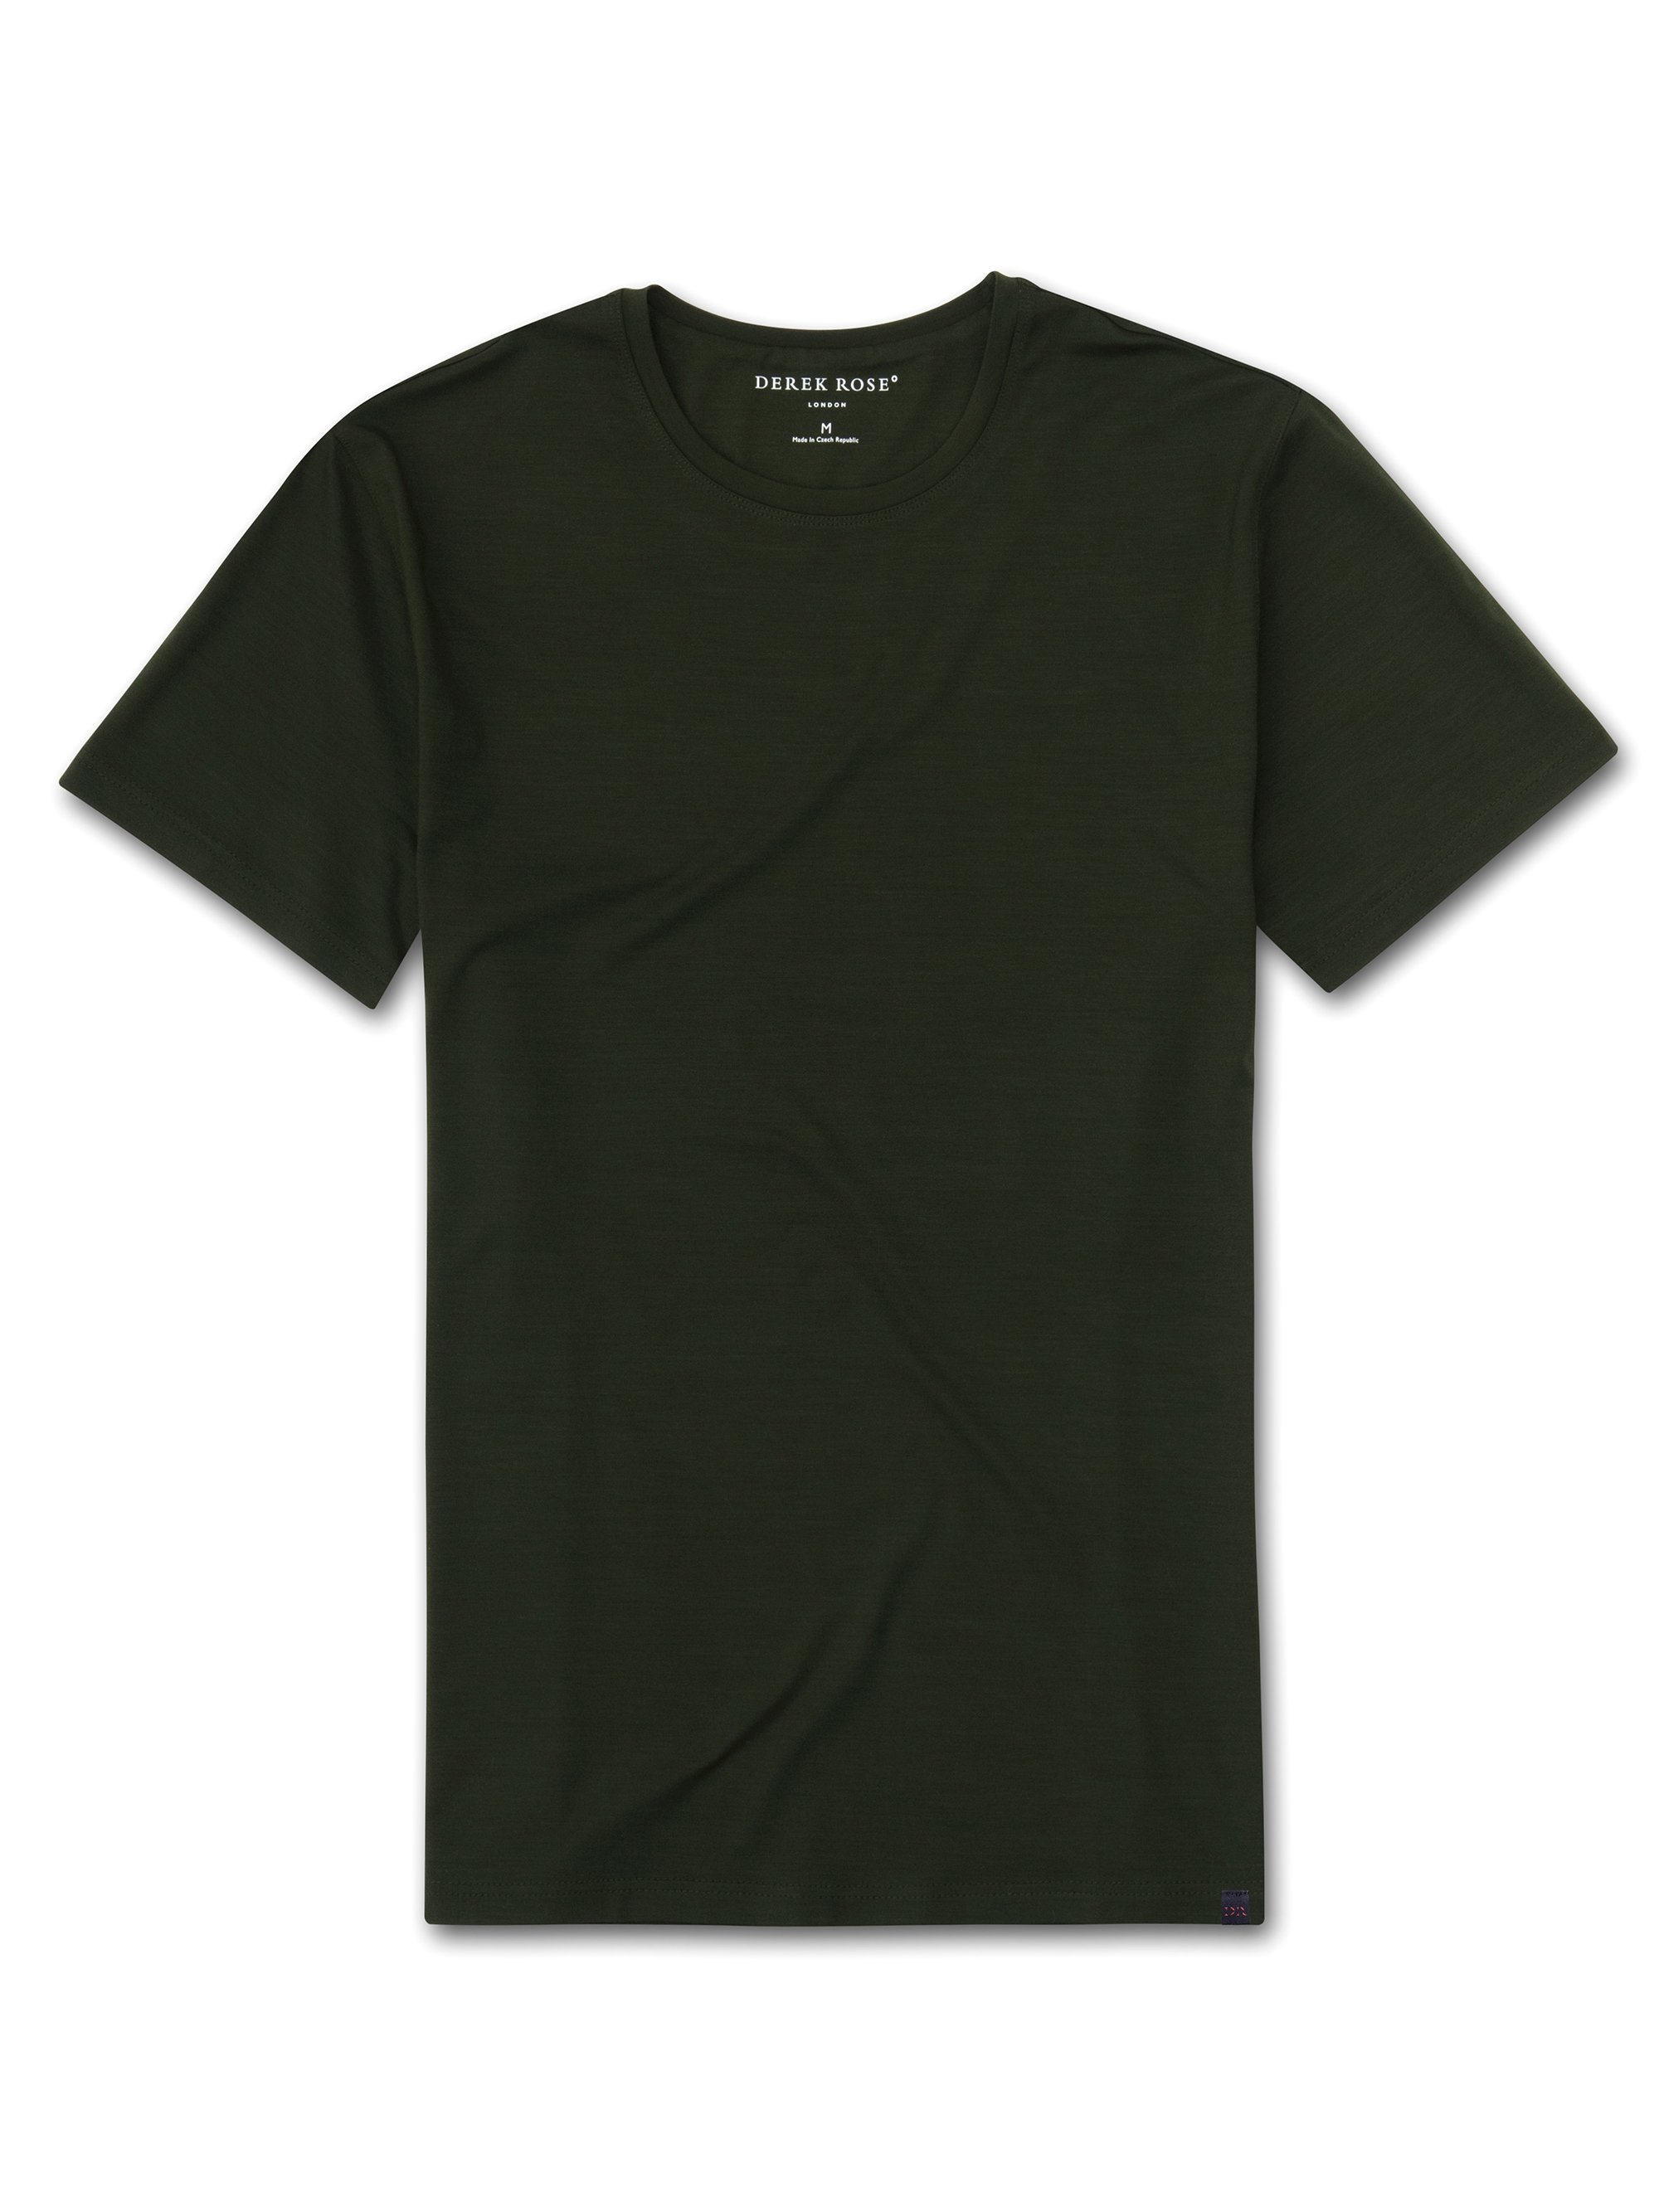 Men's Short Sleeve T-Shirt Basel 9 Micro Modal Stretch Green